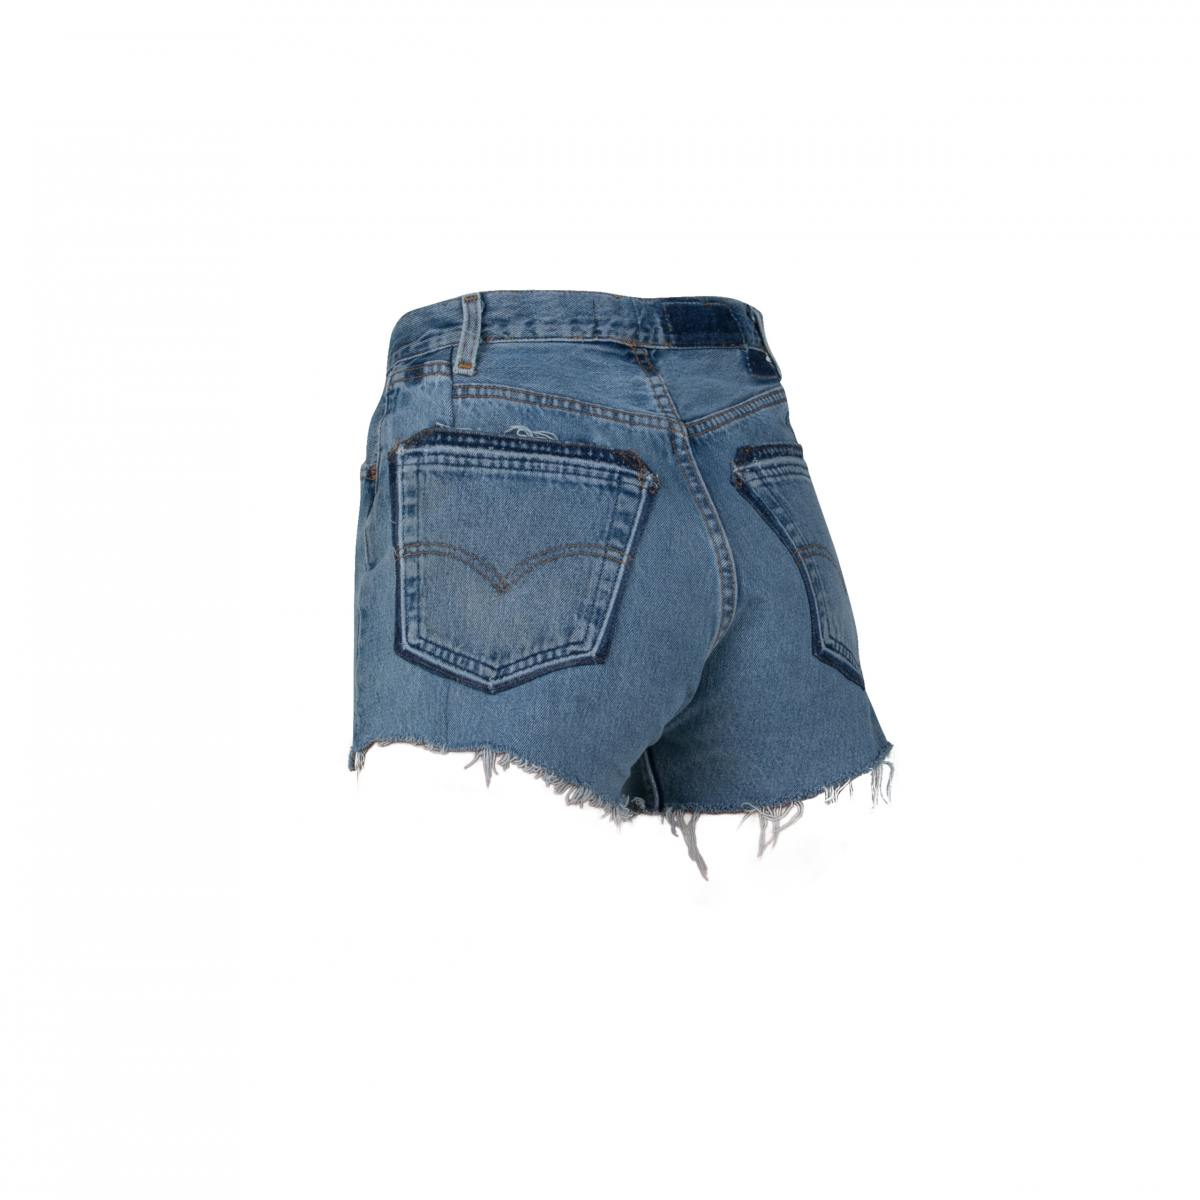 Unraveled Shorts by EB Denim, available on ebdenim.com for $195 Hailey Baldwin Shorts SIMILAR PRODUCT